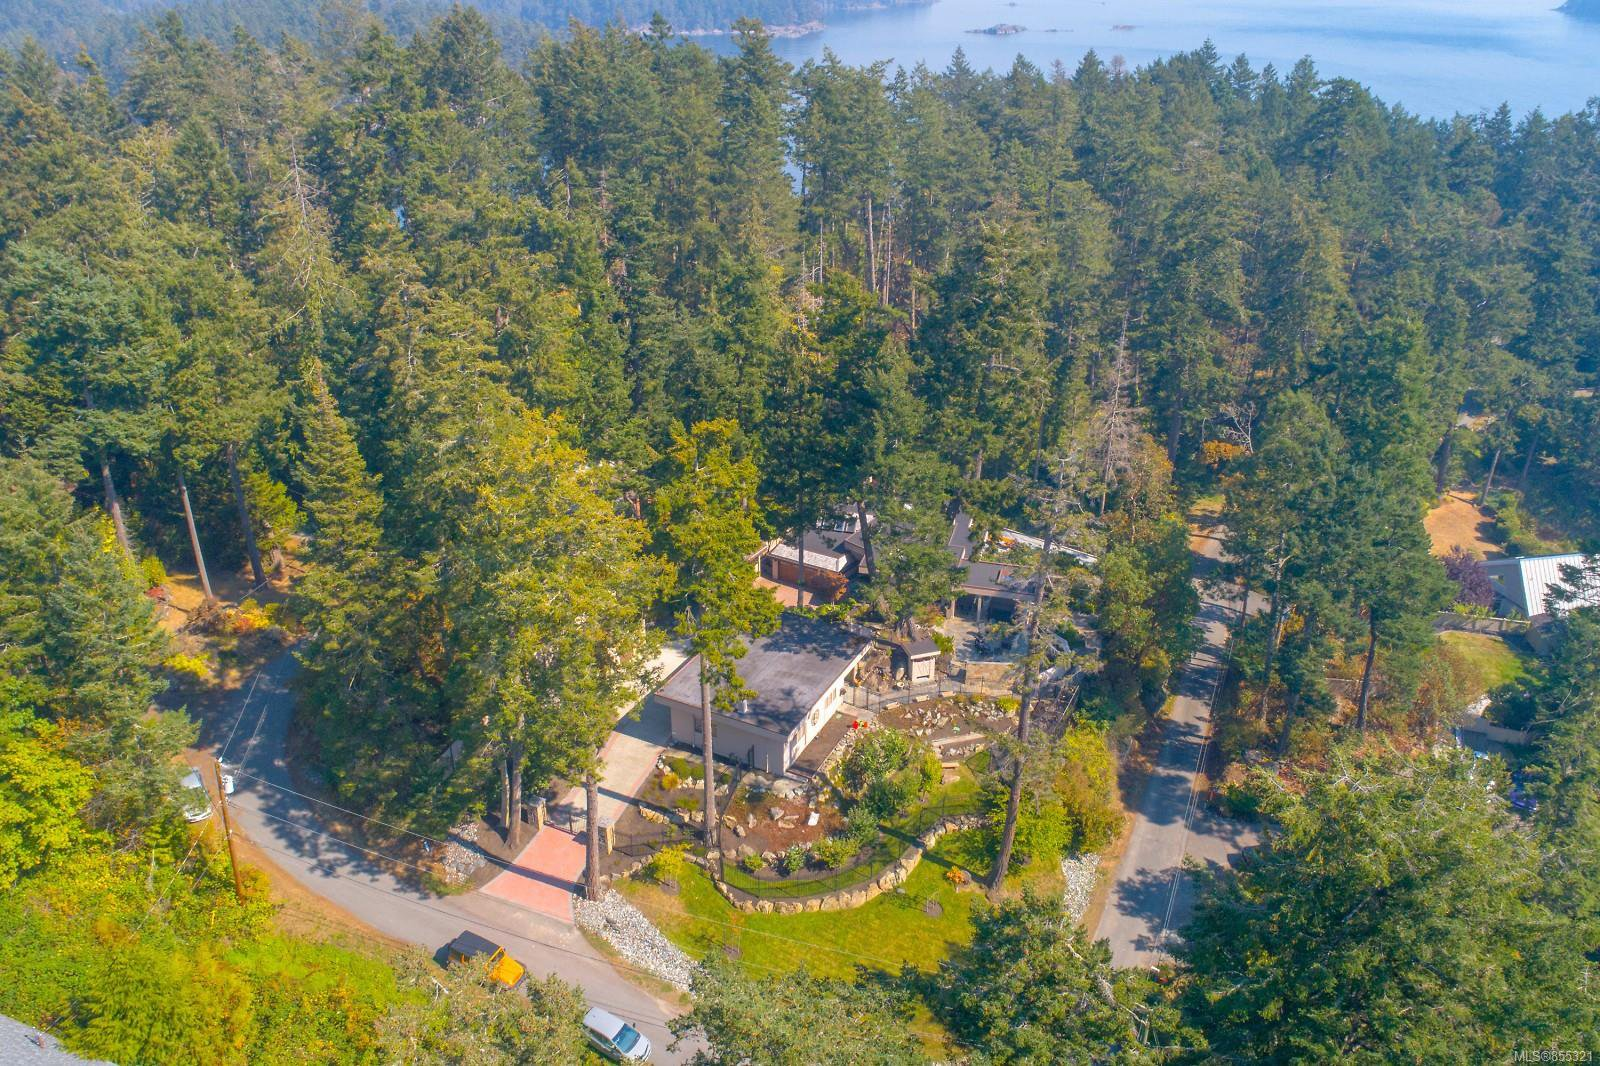 Main Photo: 10849 Fernie Wynd Rd in : NS Curteis Point Single Family Detached for sale (North Saanich)  : MLS®# 855321